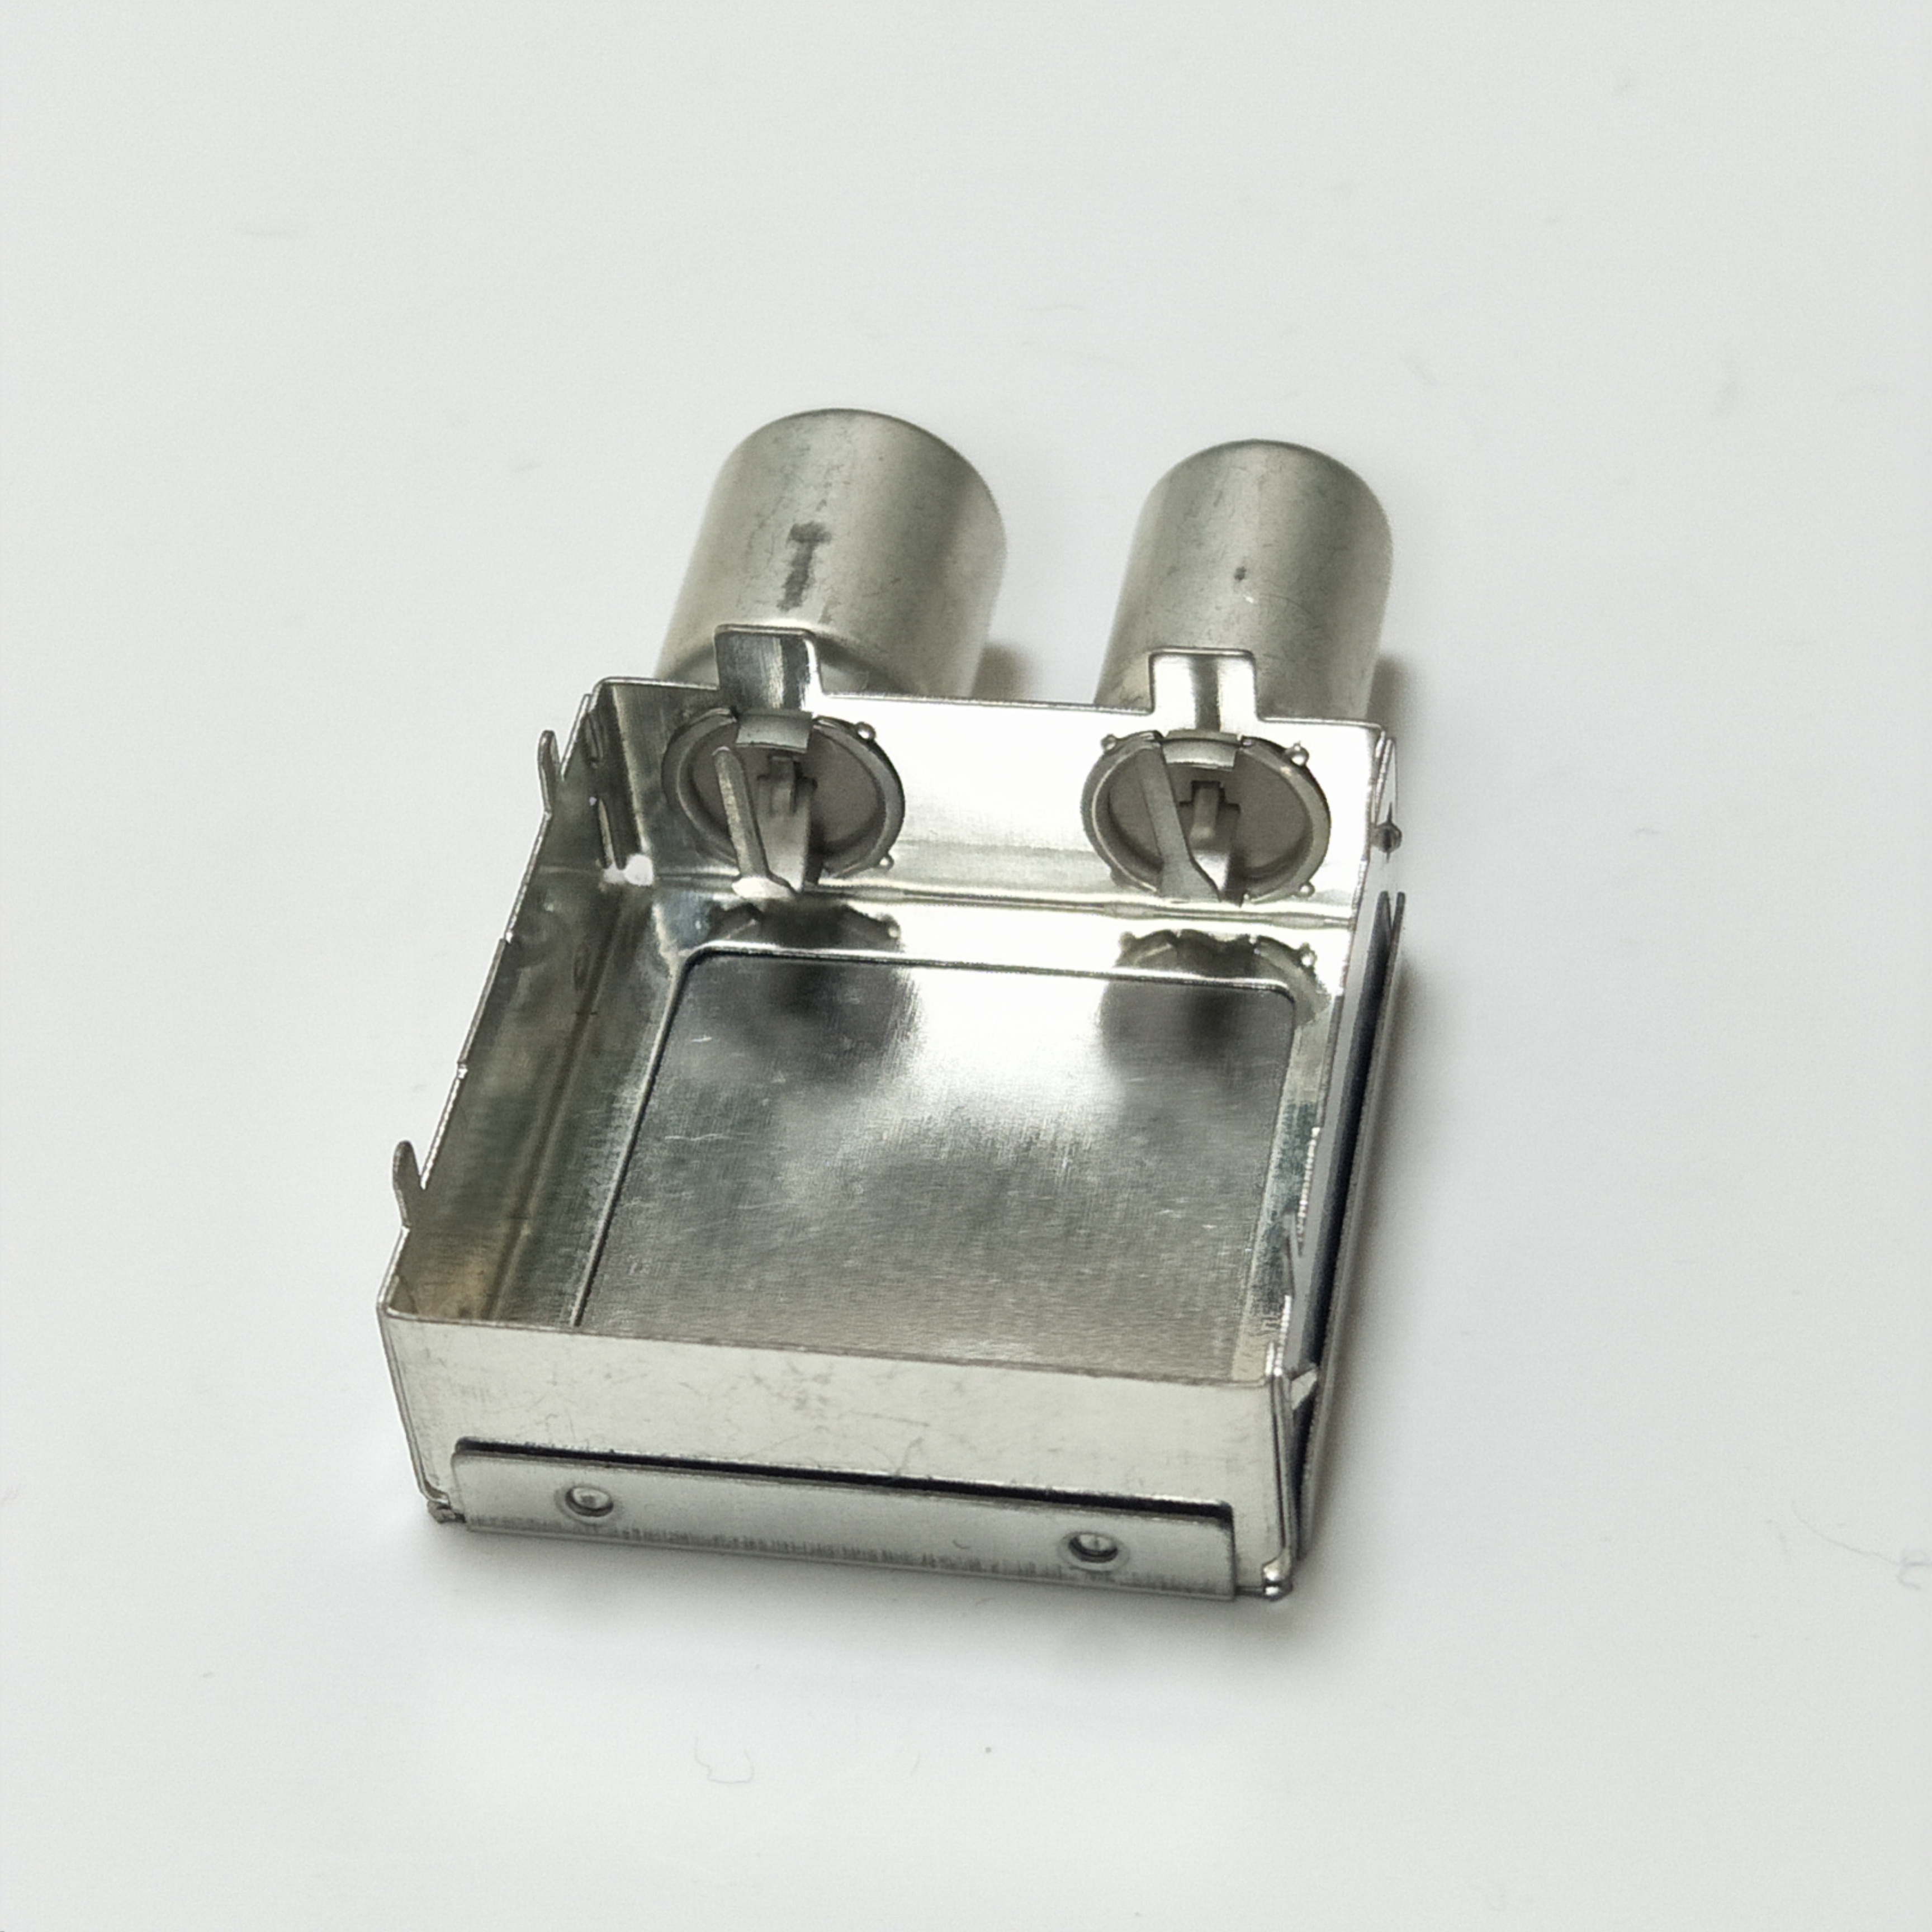 Rca Connectors Pcb, Rca Connectors Pcb Suppliers and Manufacturers ...